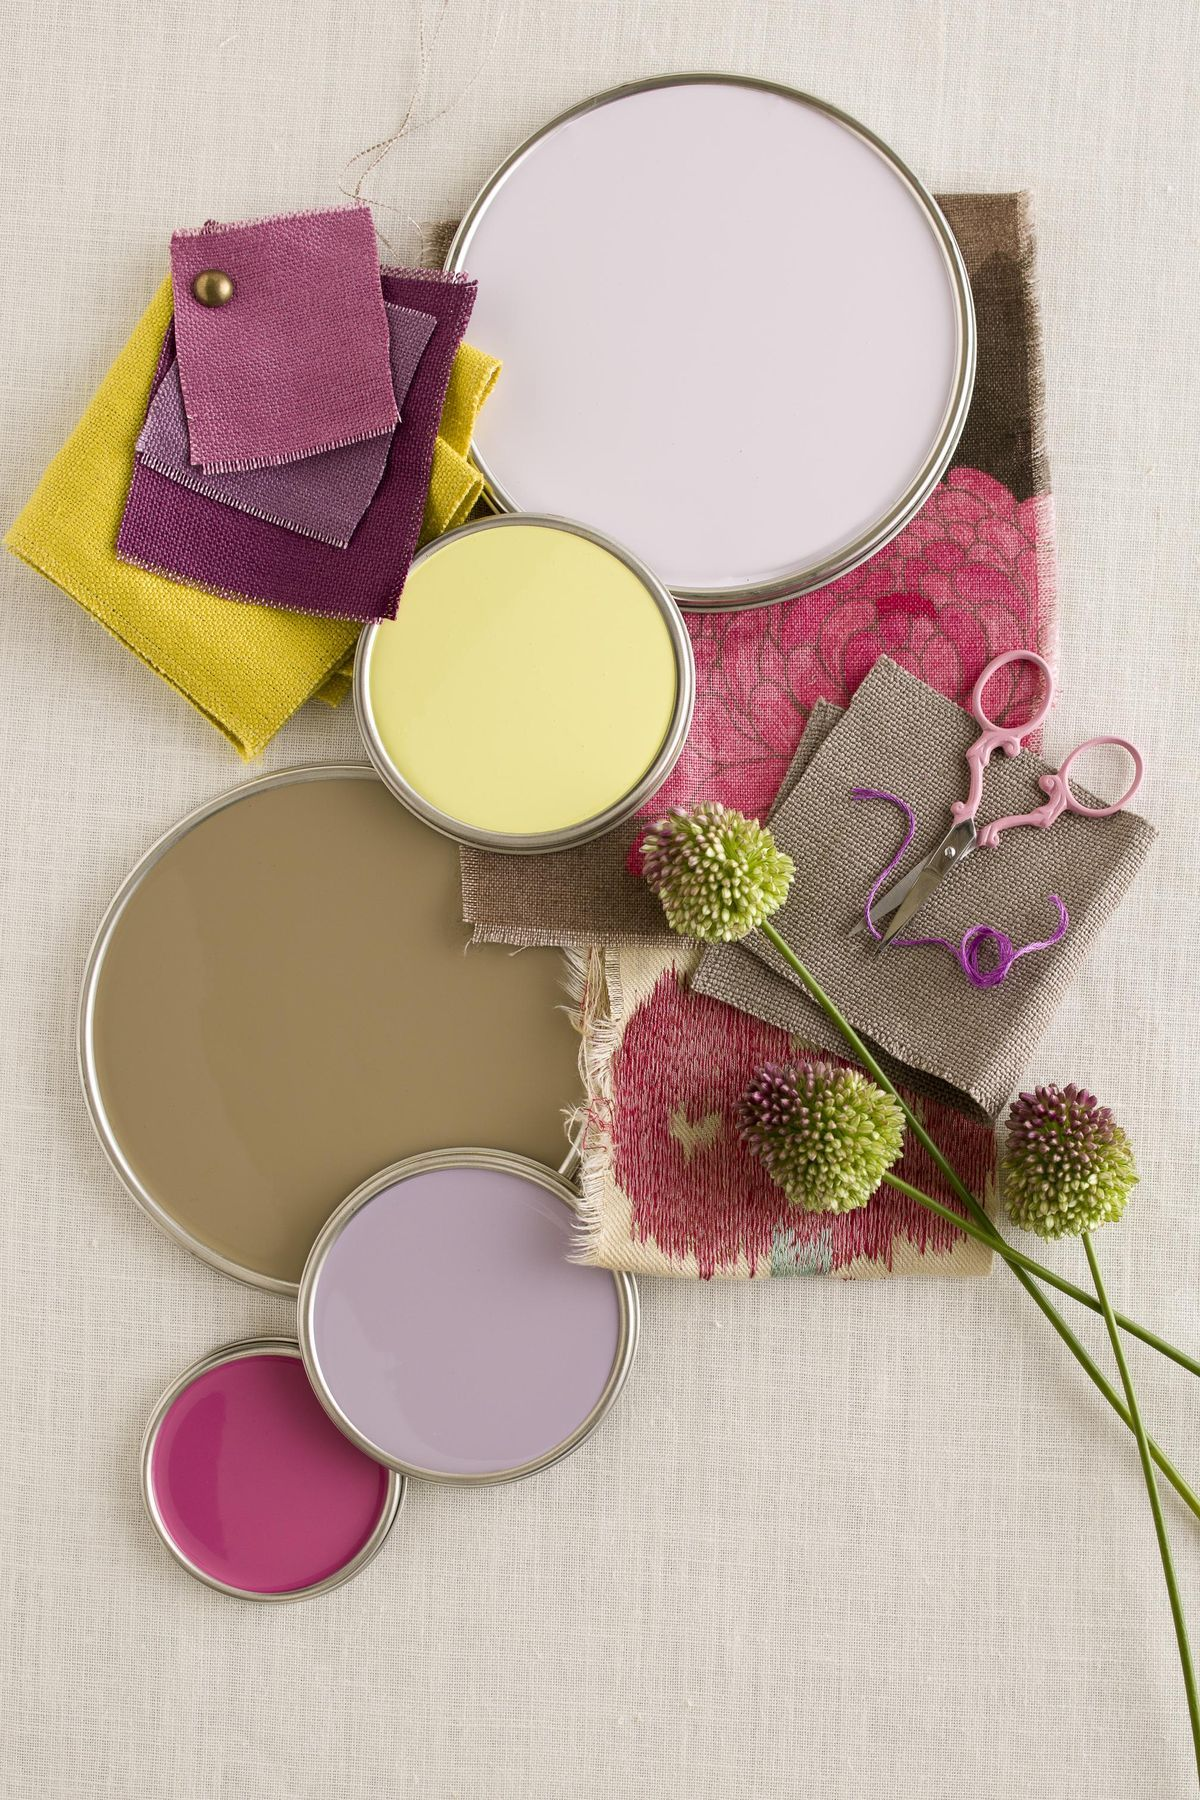 color hues of lavender fuscia canary yellow white and light rh pinterest com